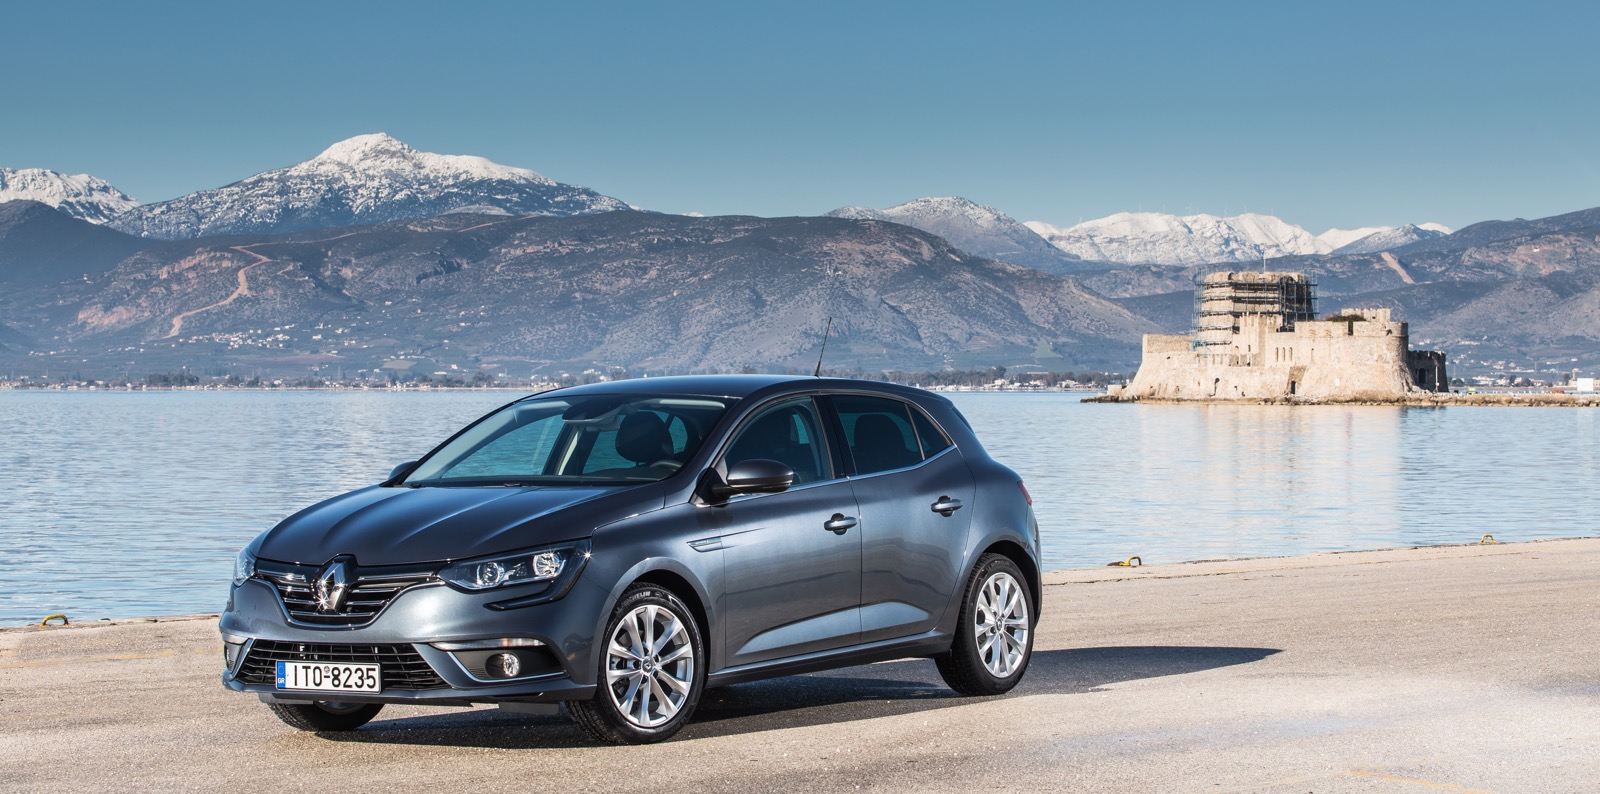 First_Drive_Renault_Megane_31